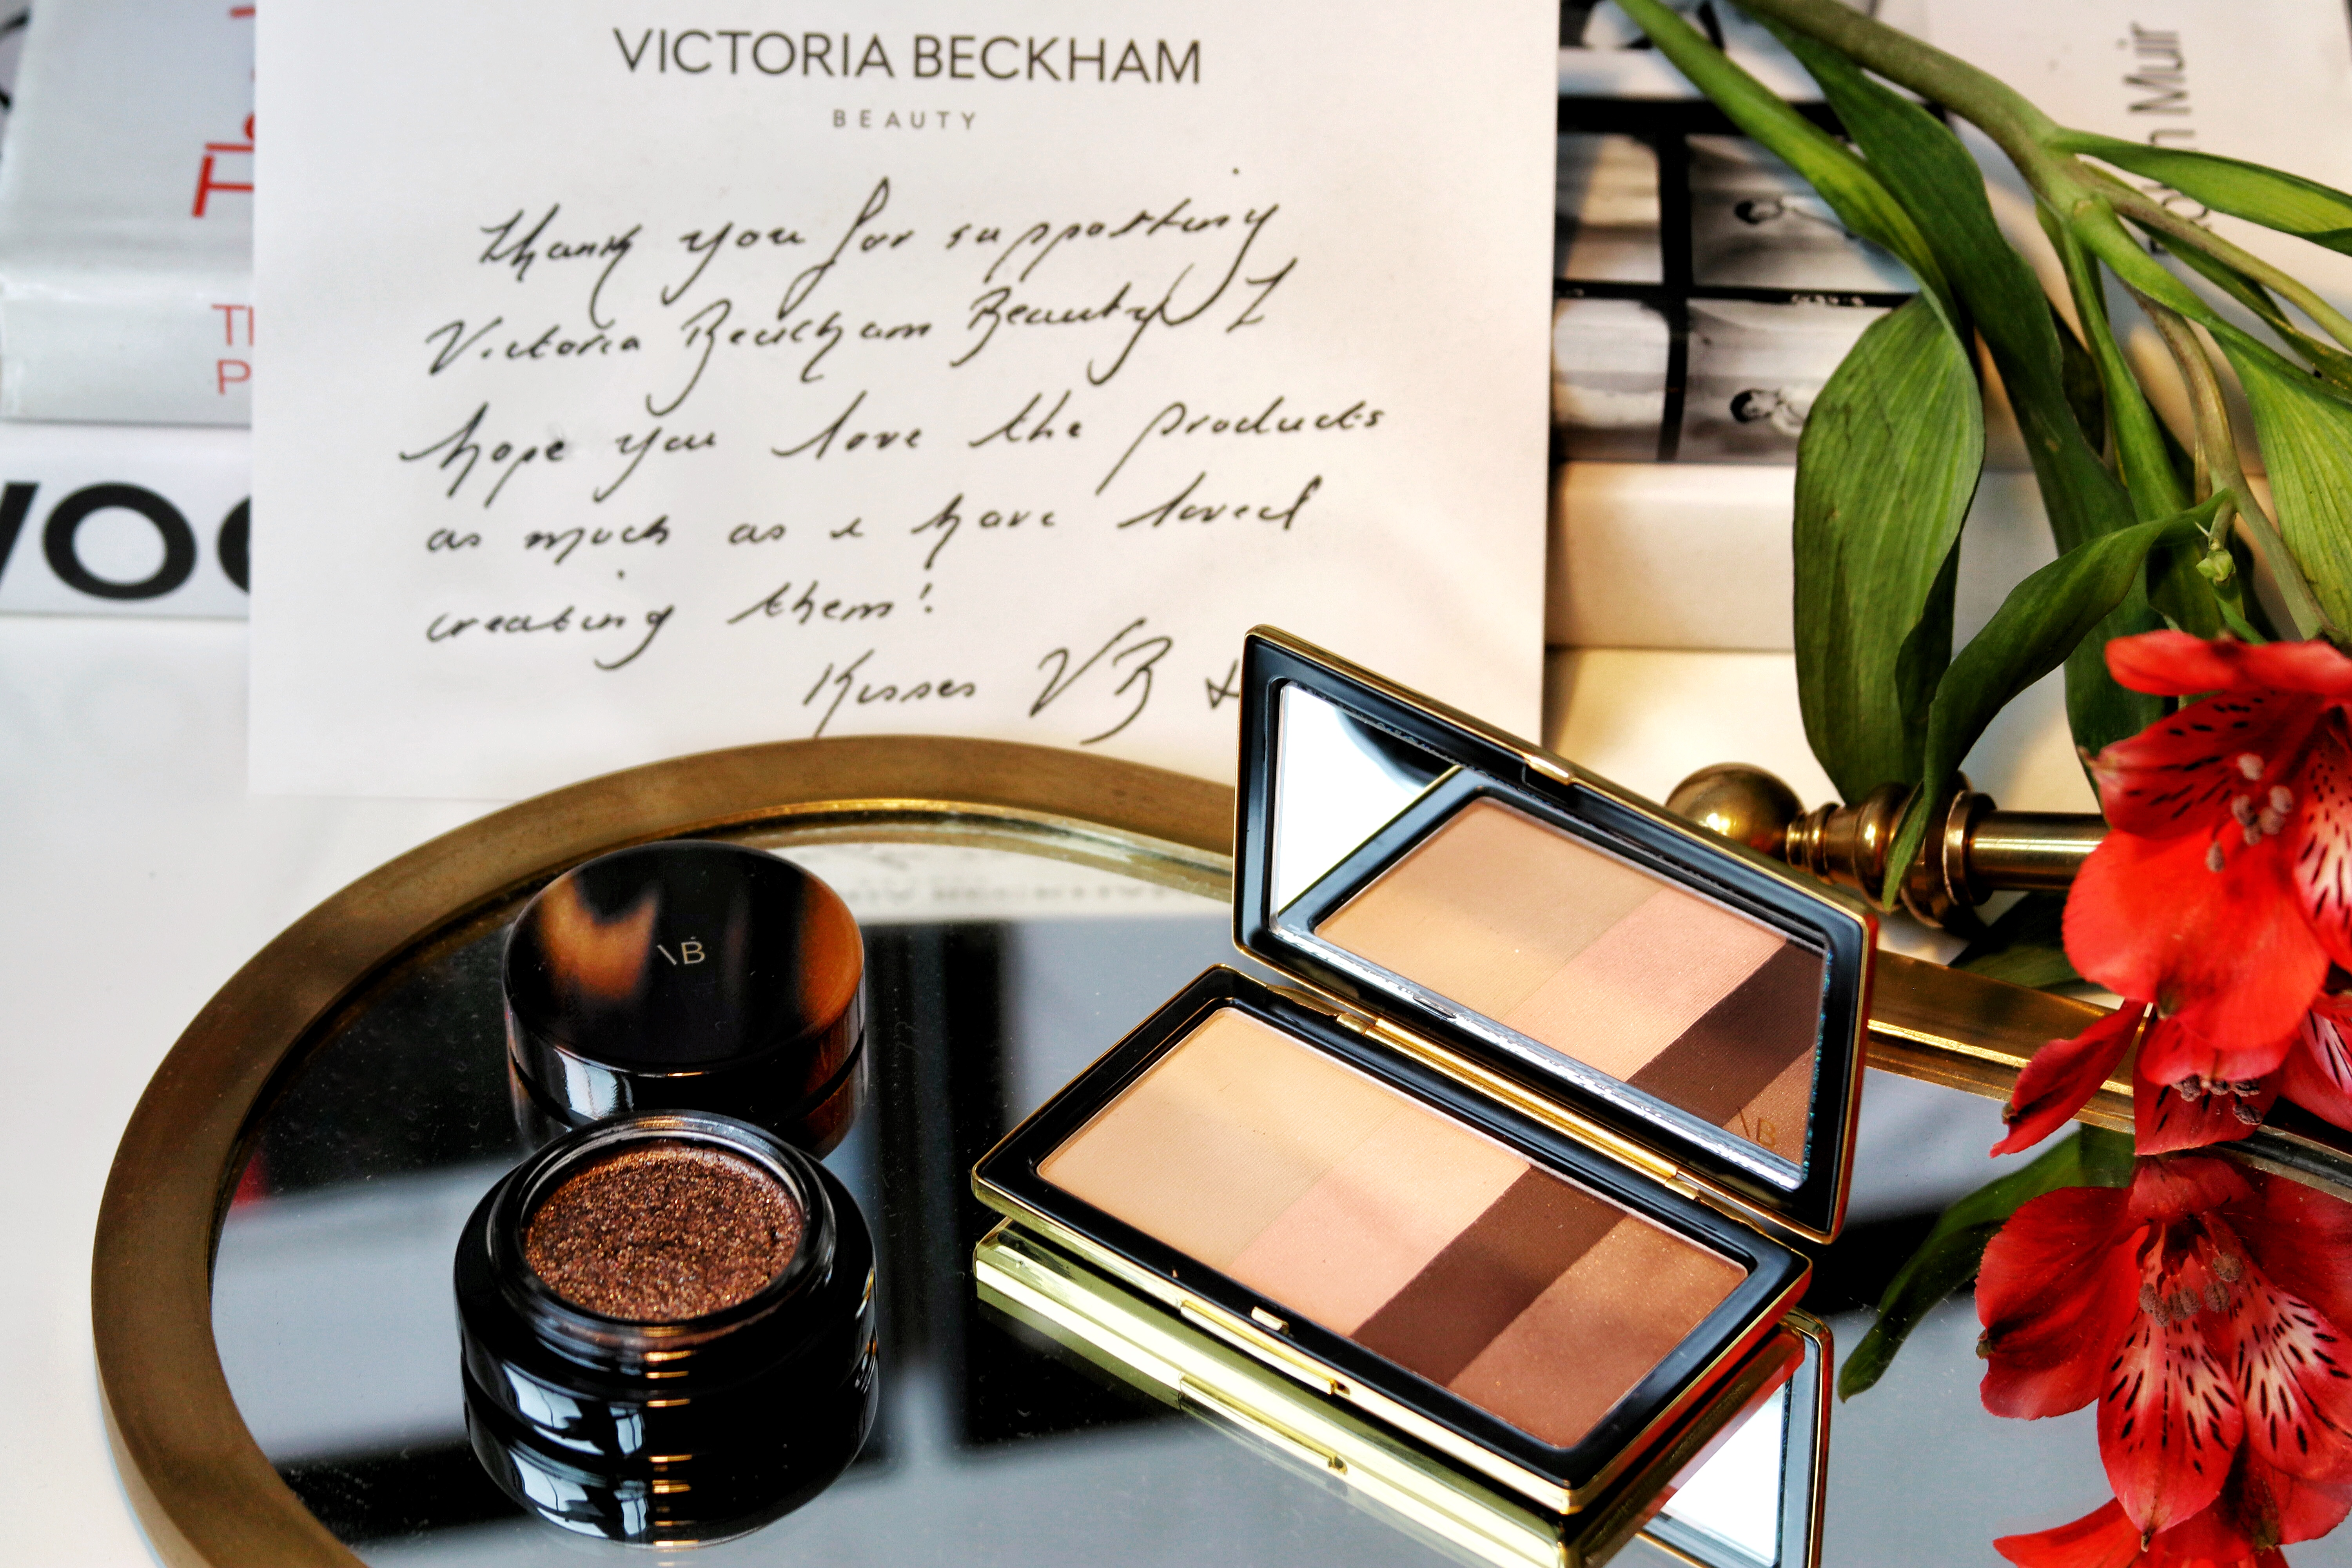 Victoria Beckham Beauty - A review of the latest makeup launch from this former Spice girl. It's clean beauty, it's sustainable and it's gorgeous! In this image the smokey eyeshadow palette sits open on a mirror, as does the glitter lid lustre. Behind them is a hand printed note from VBB, red flowers frame the photo.